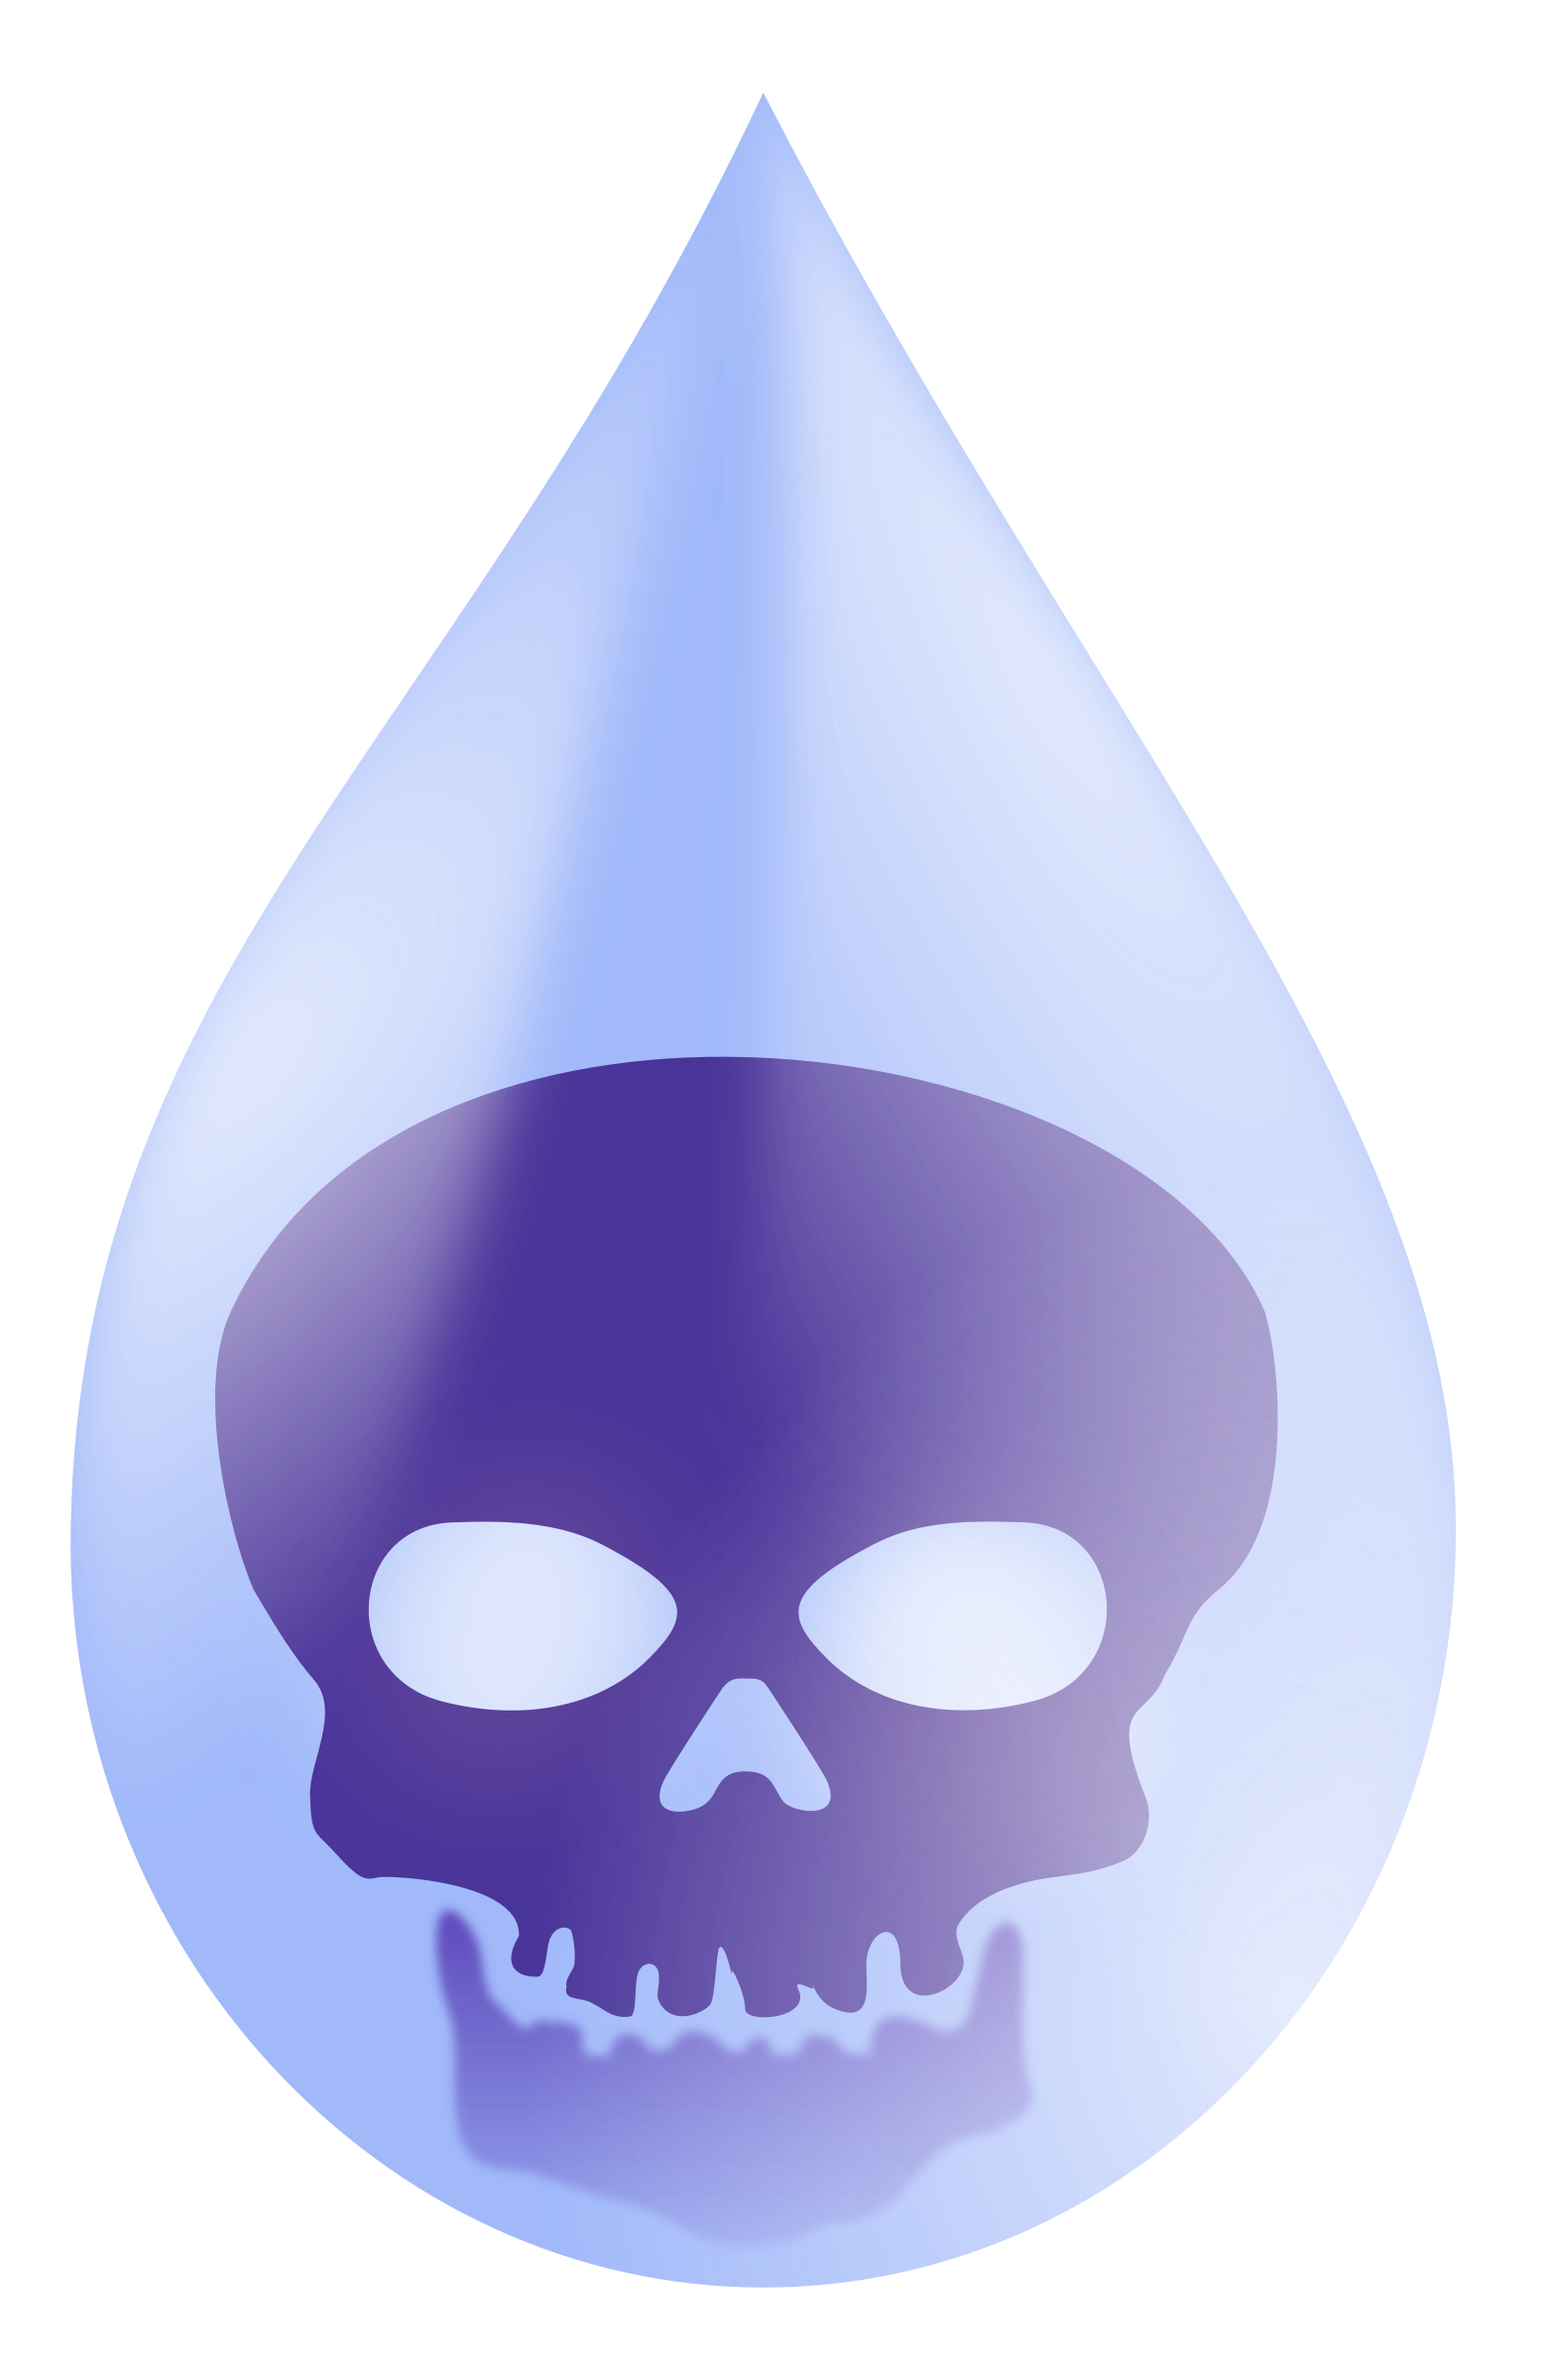 Pollution clipart transparent Pollution Water pollution Clipart Water